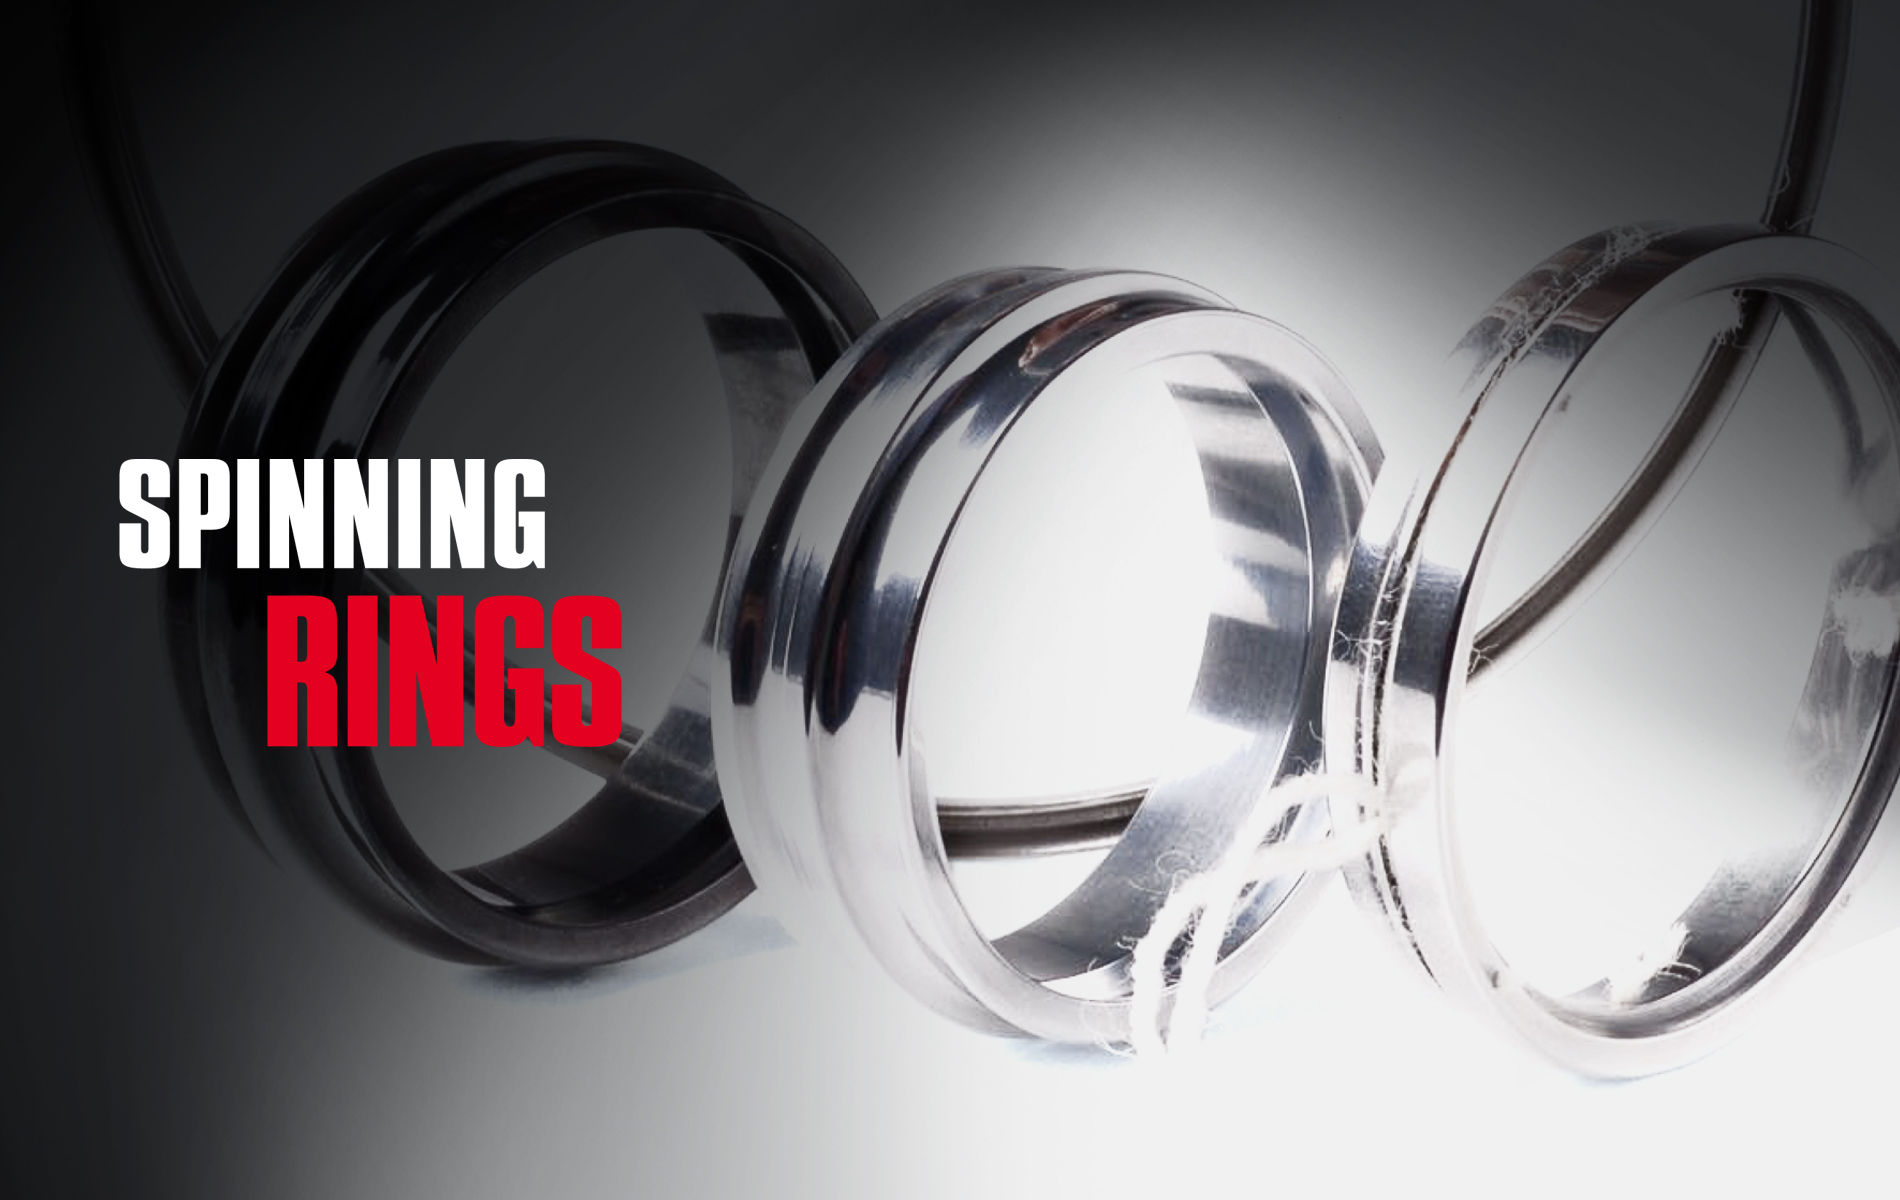 spin rings